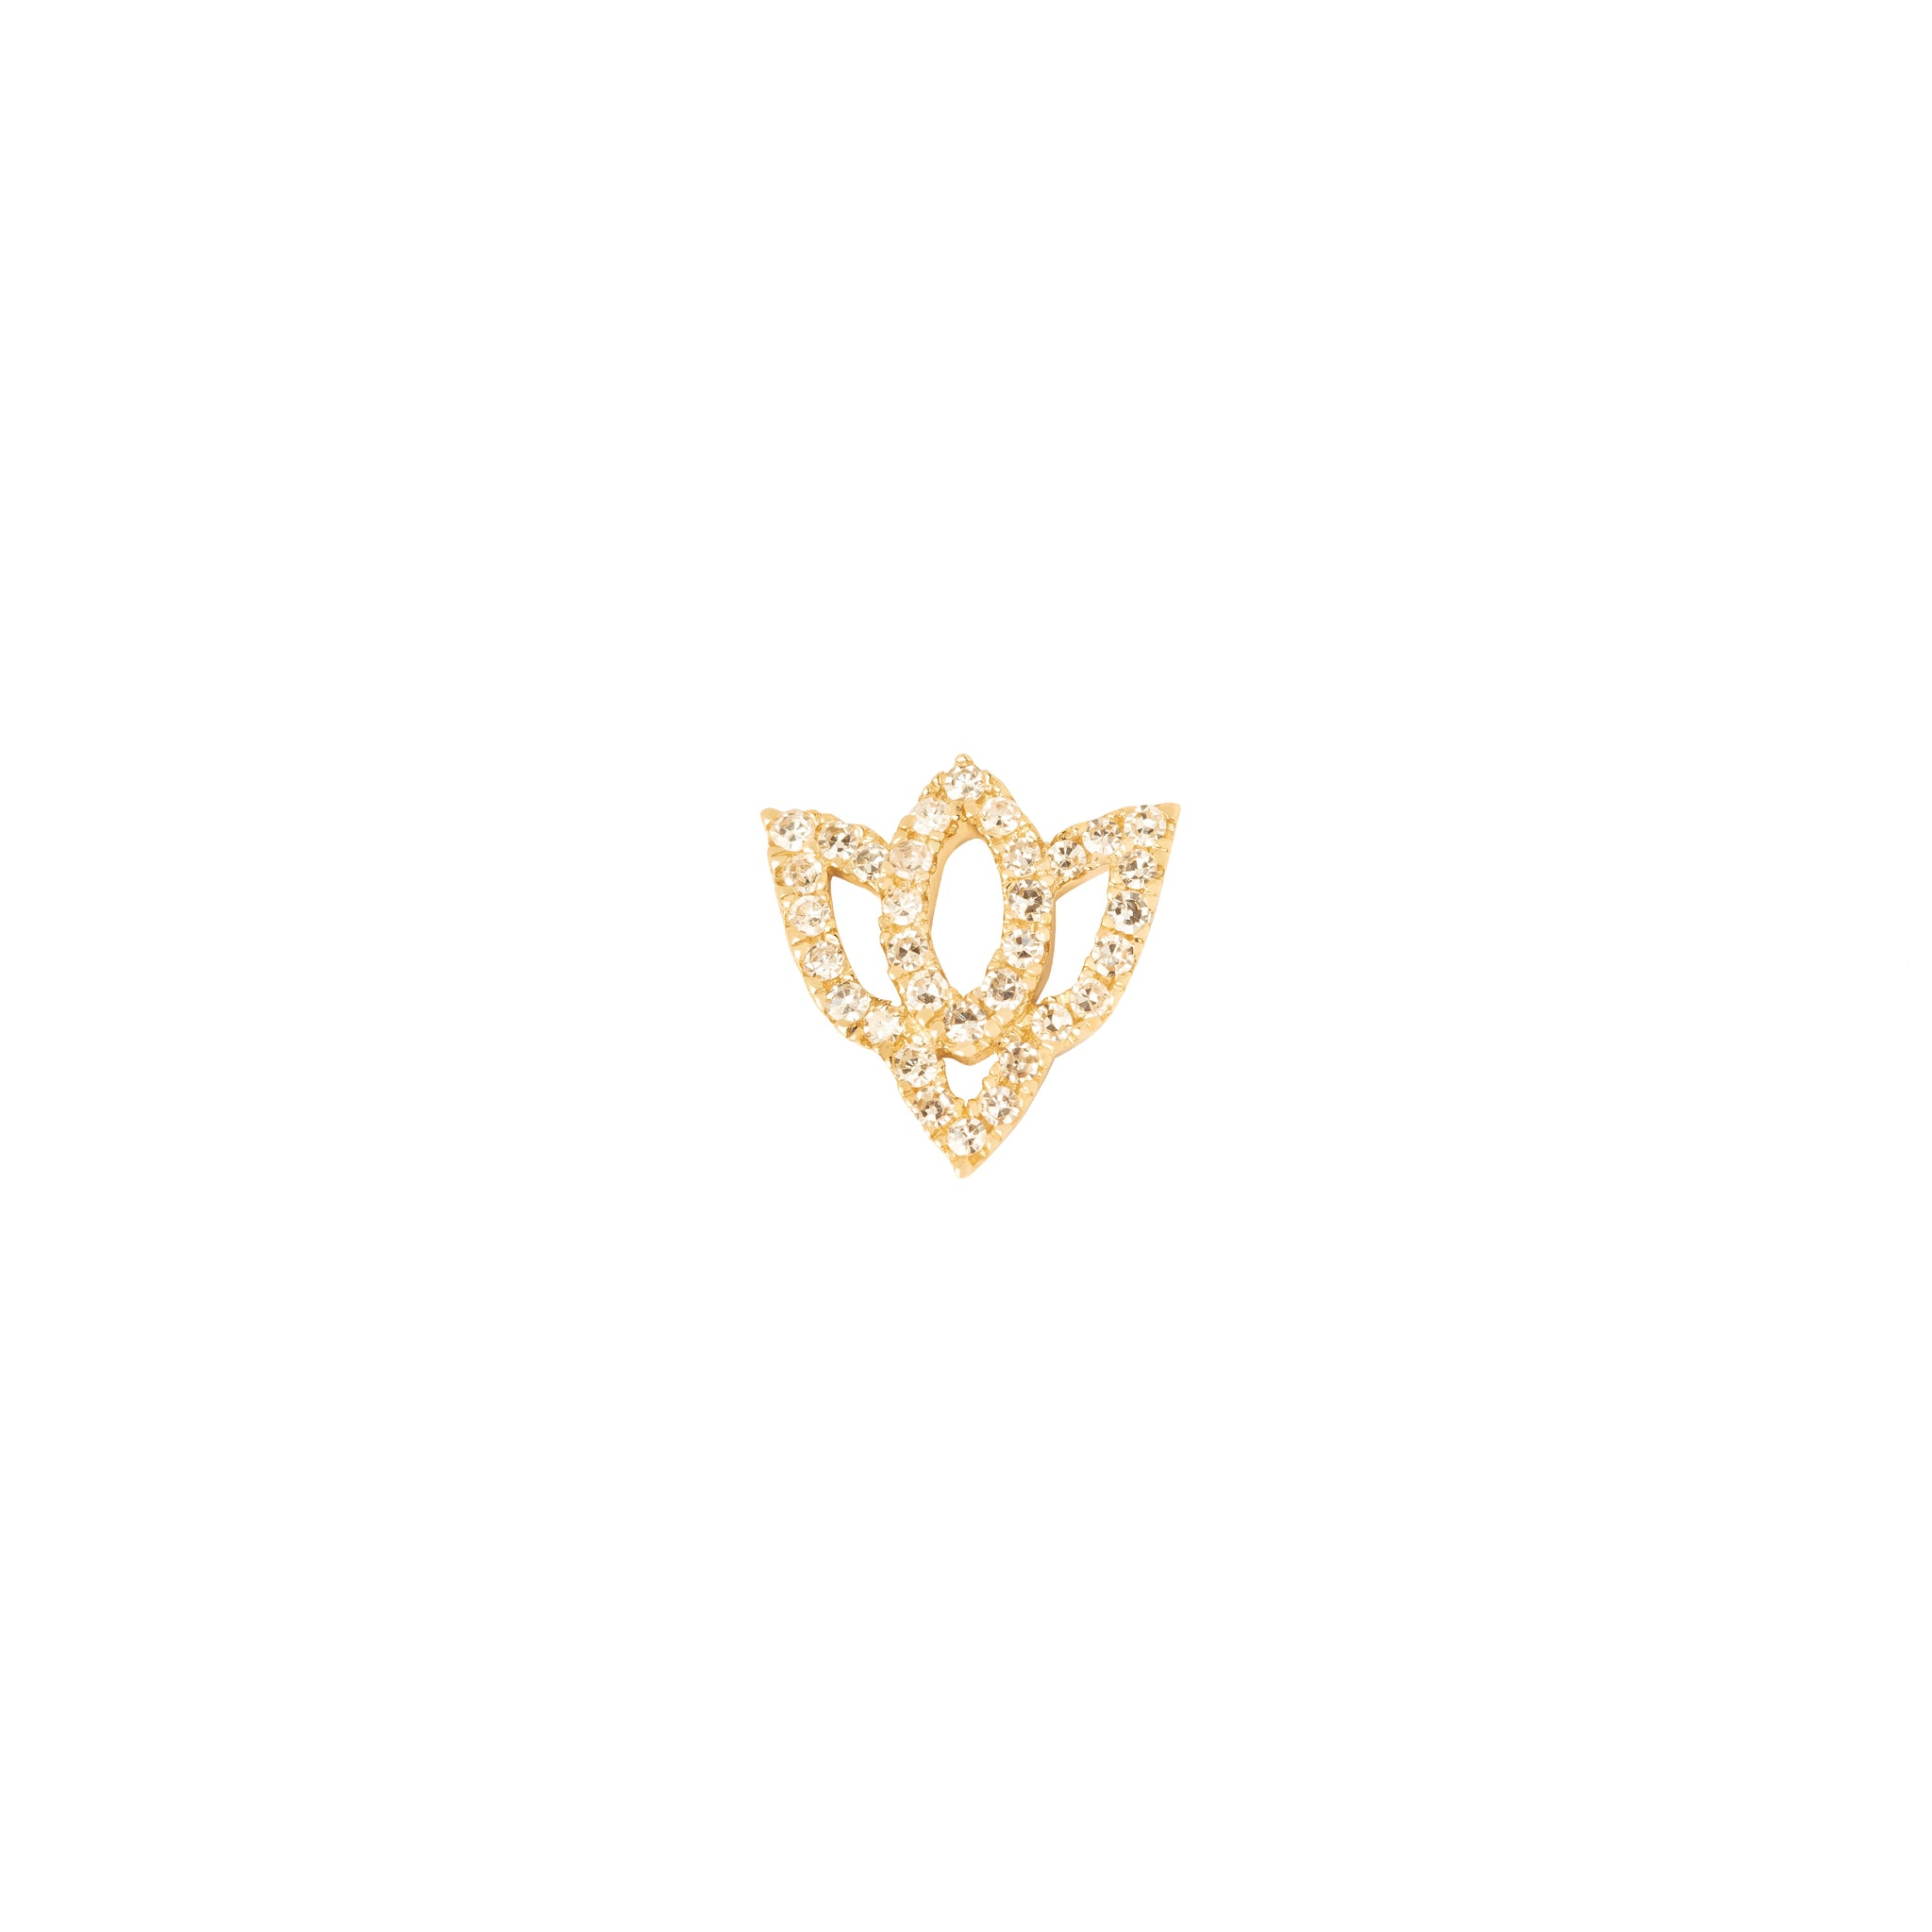 Loquet Lotus Flower Charm - Charms & Pendants - Broken English Jewelry